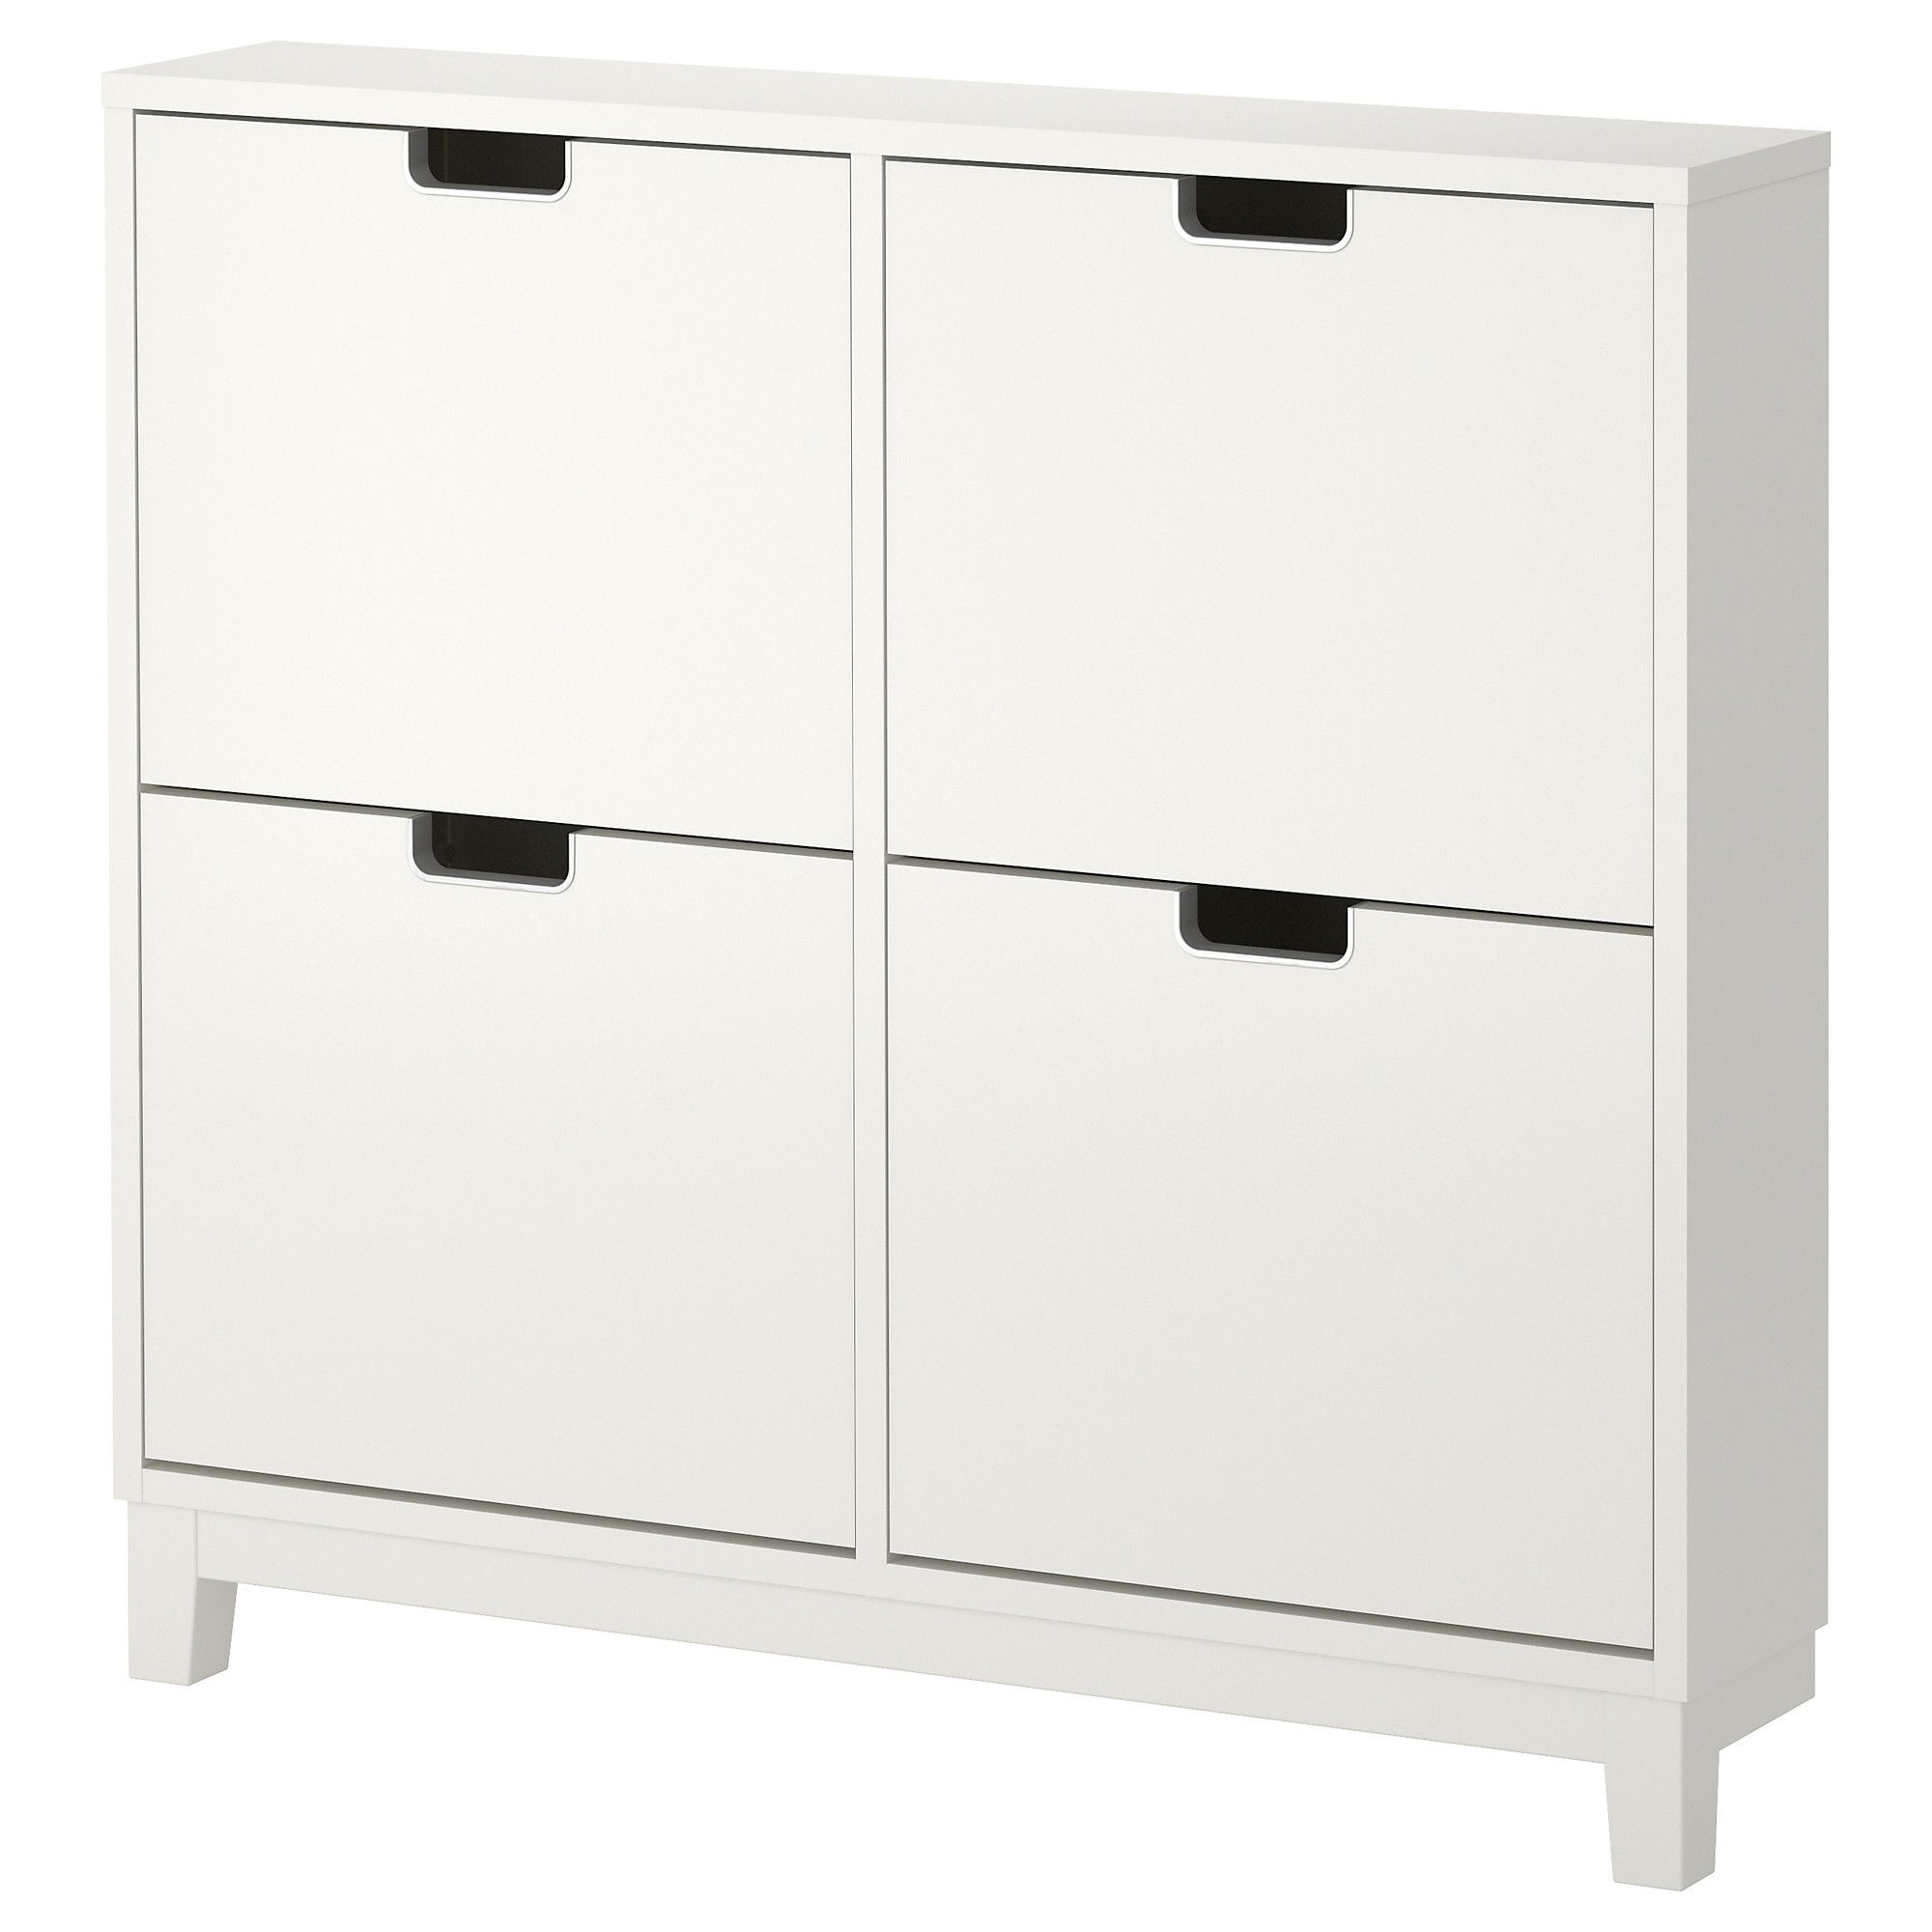 Stall Shoe Cabinet With 4 Compartments White 96x90 Cm Ikea